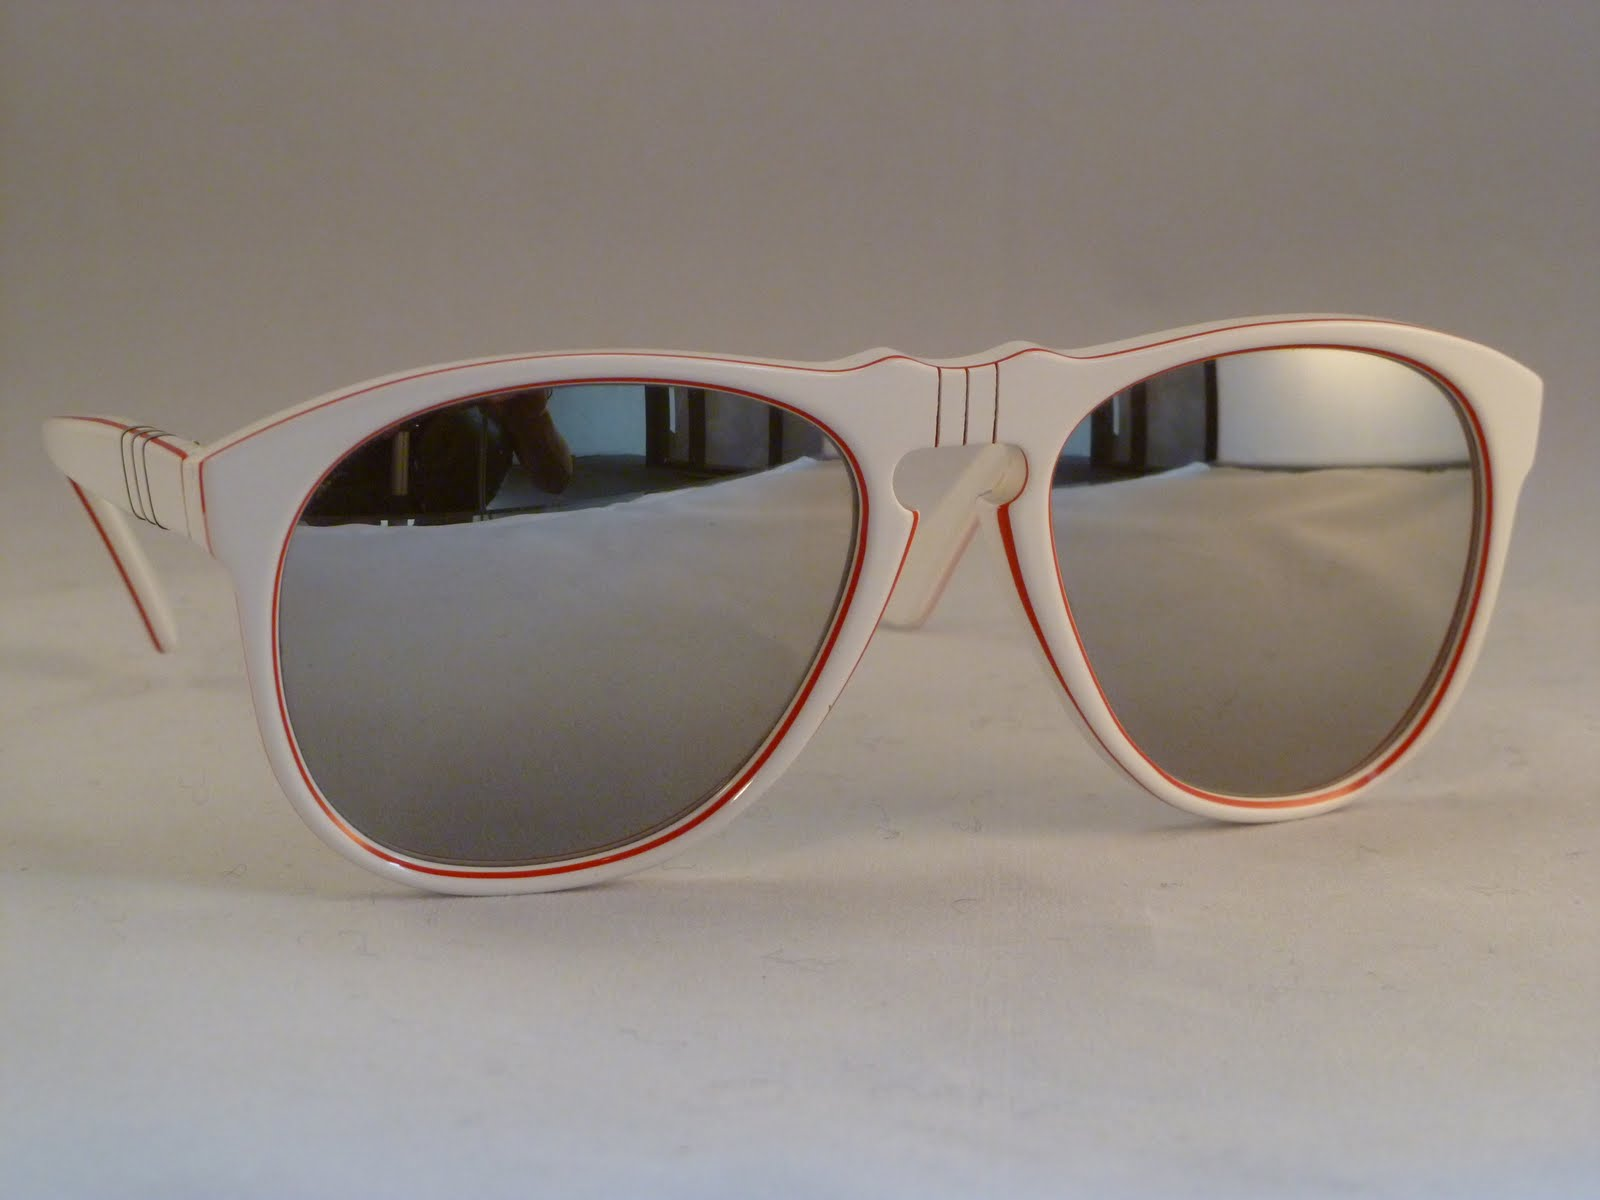 2fb3dd8df3 Persol sport classic limited edition featuring Victor Flex bridge. One  available